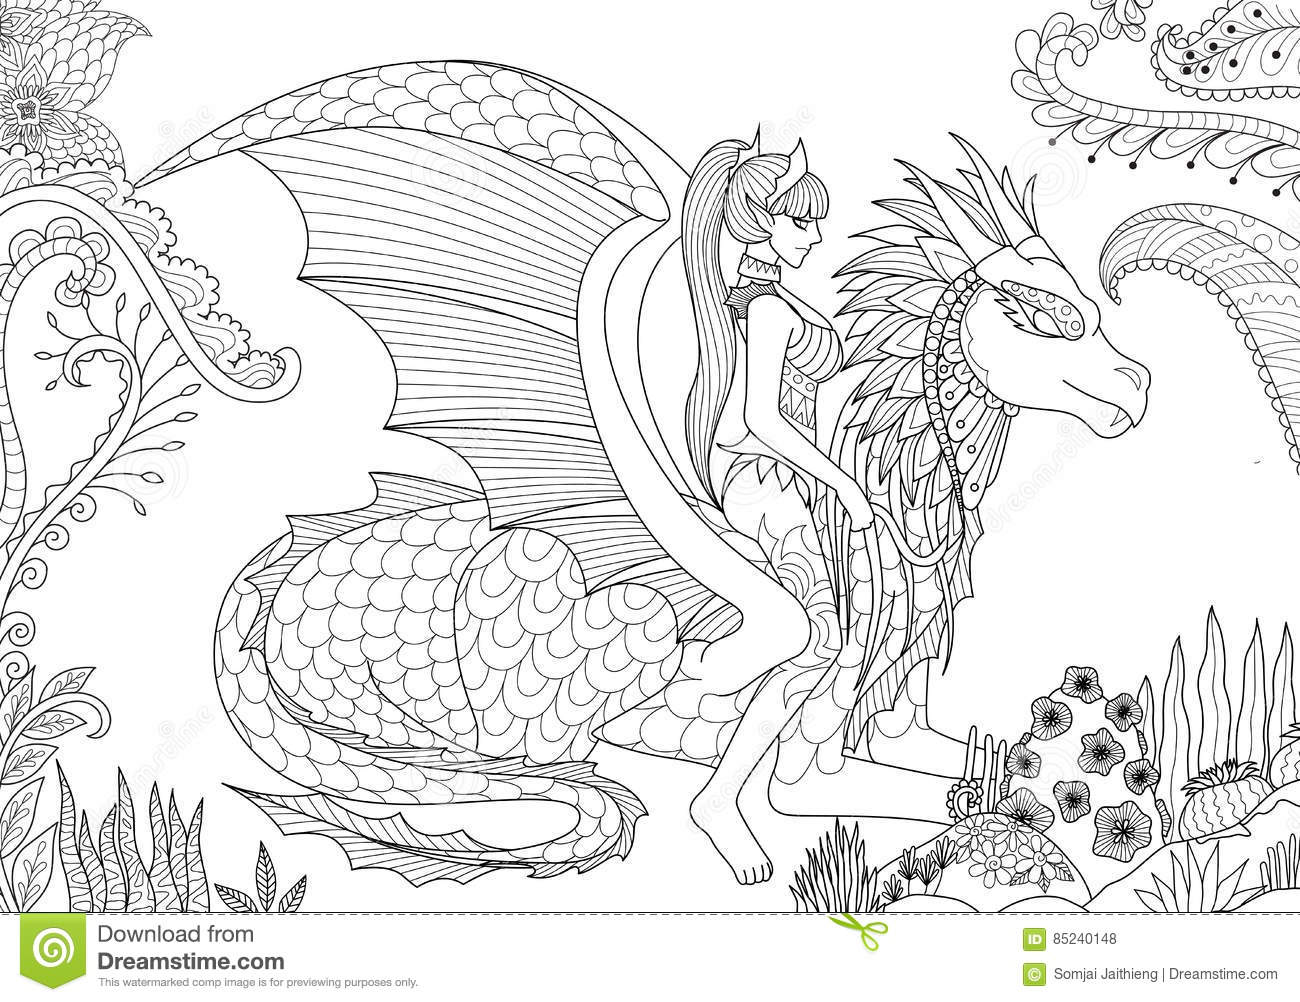 Forist Dragons Coloring Pages. Forist. Best Free Coloring Pages